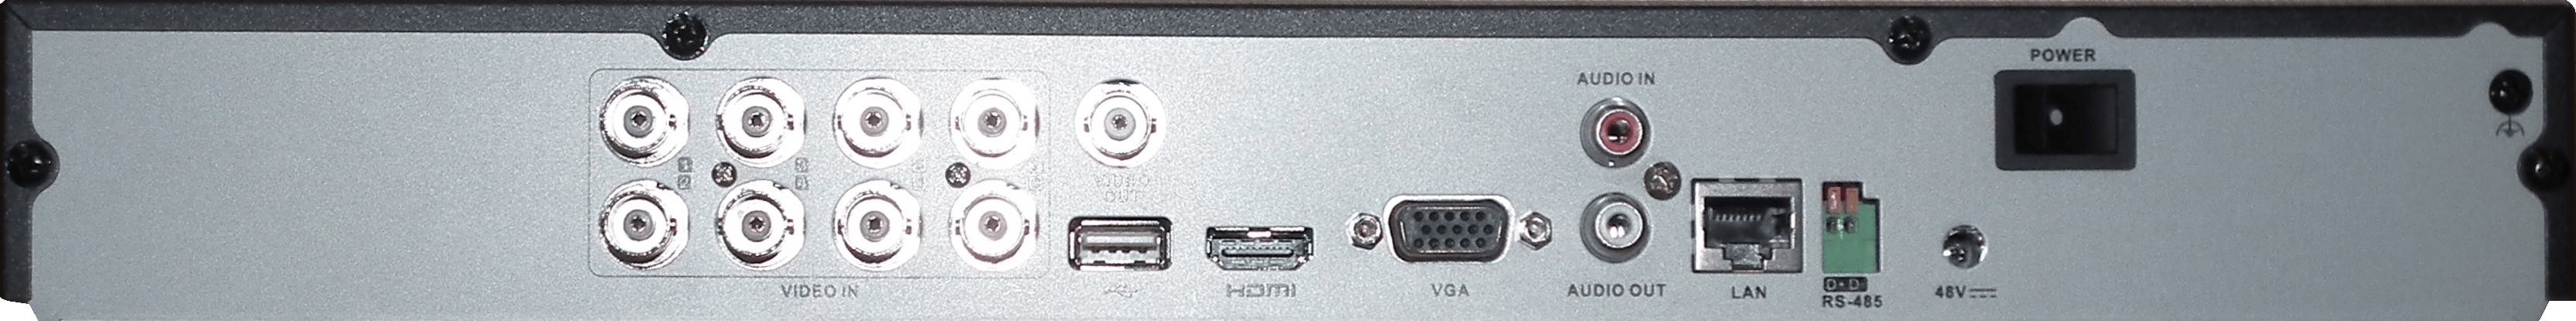 ds-7208hqhi-k2p_rear_1